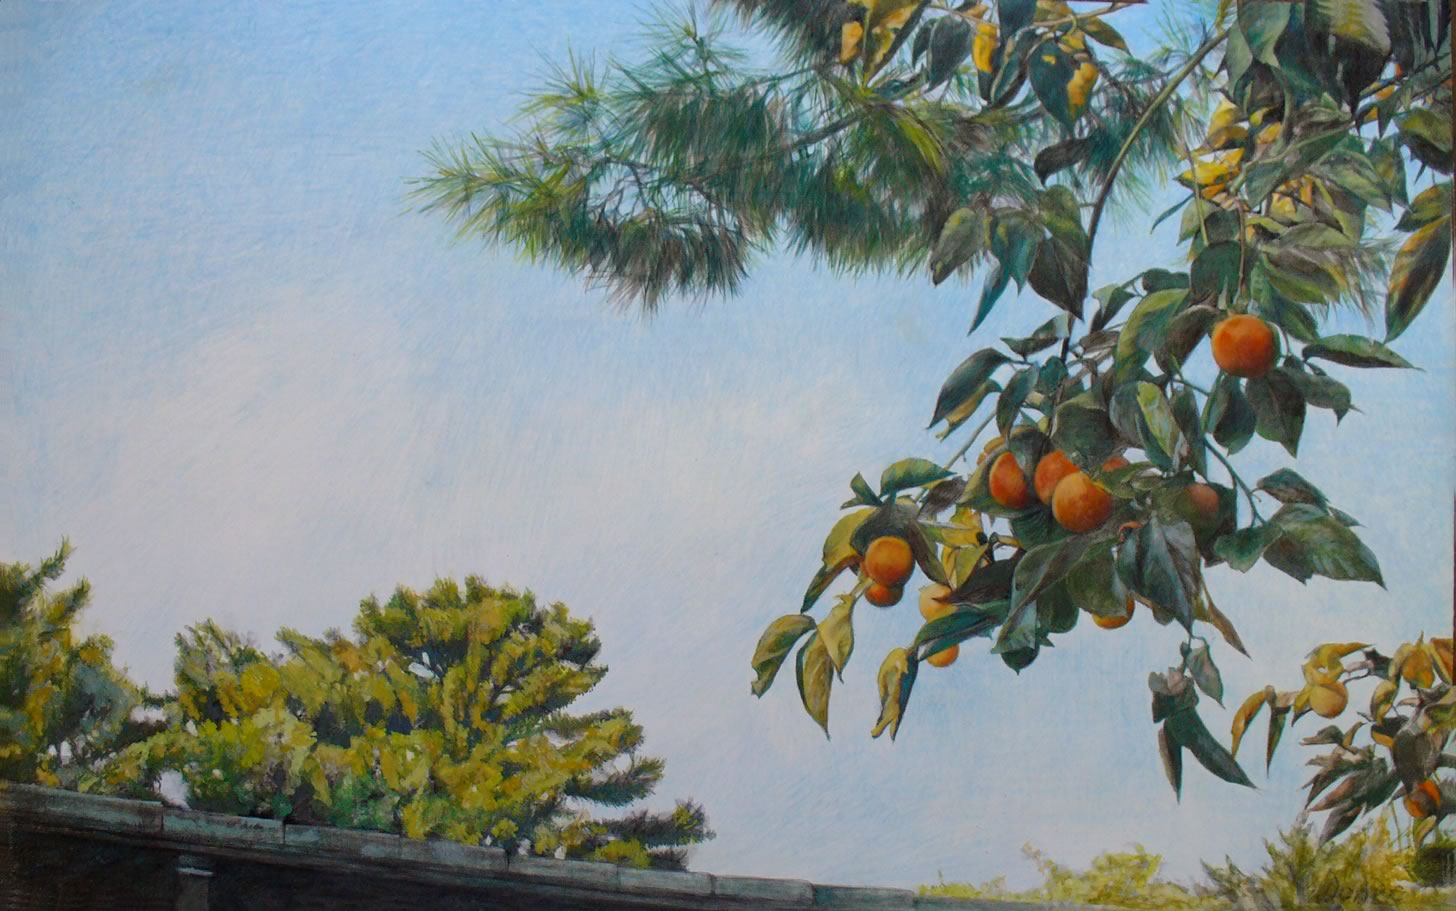 Japanese oranges in the Imperial Garden